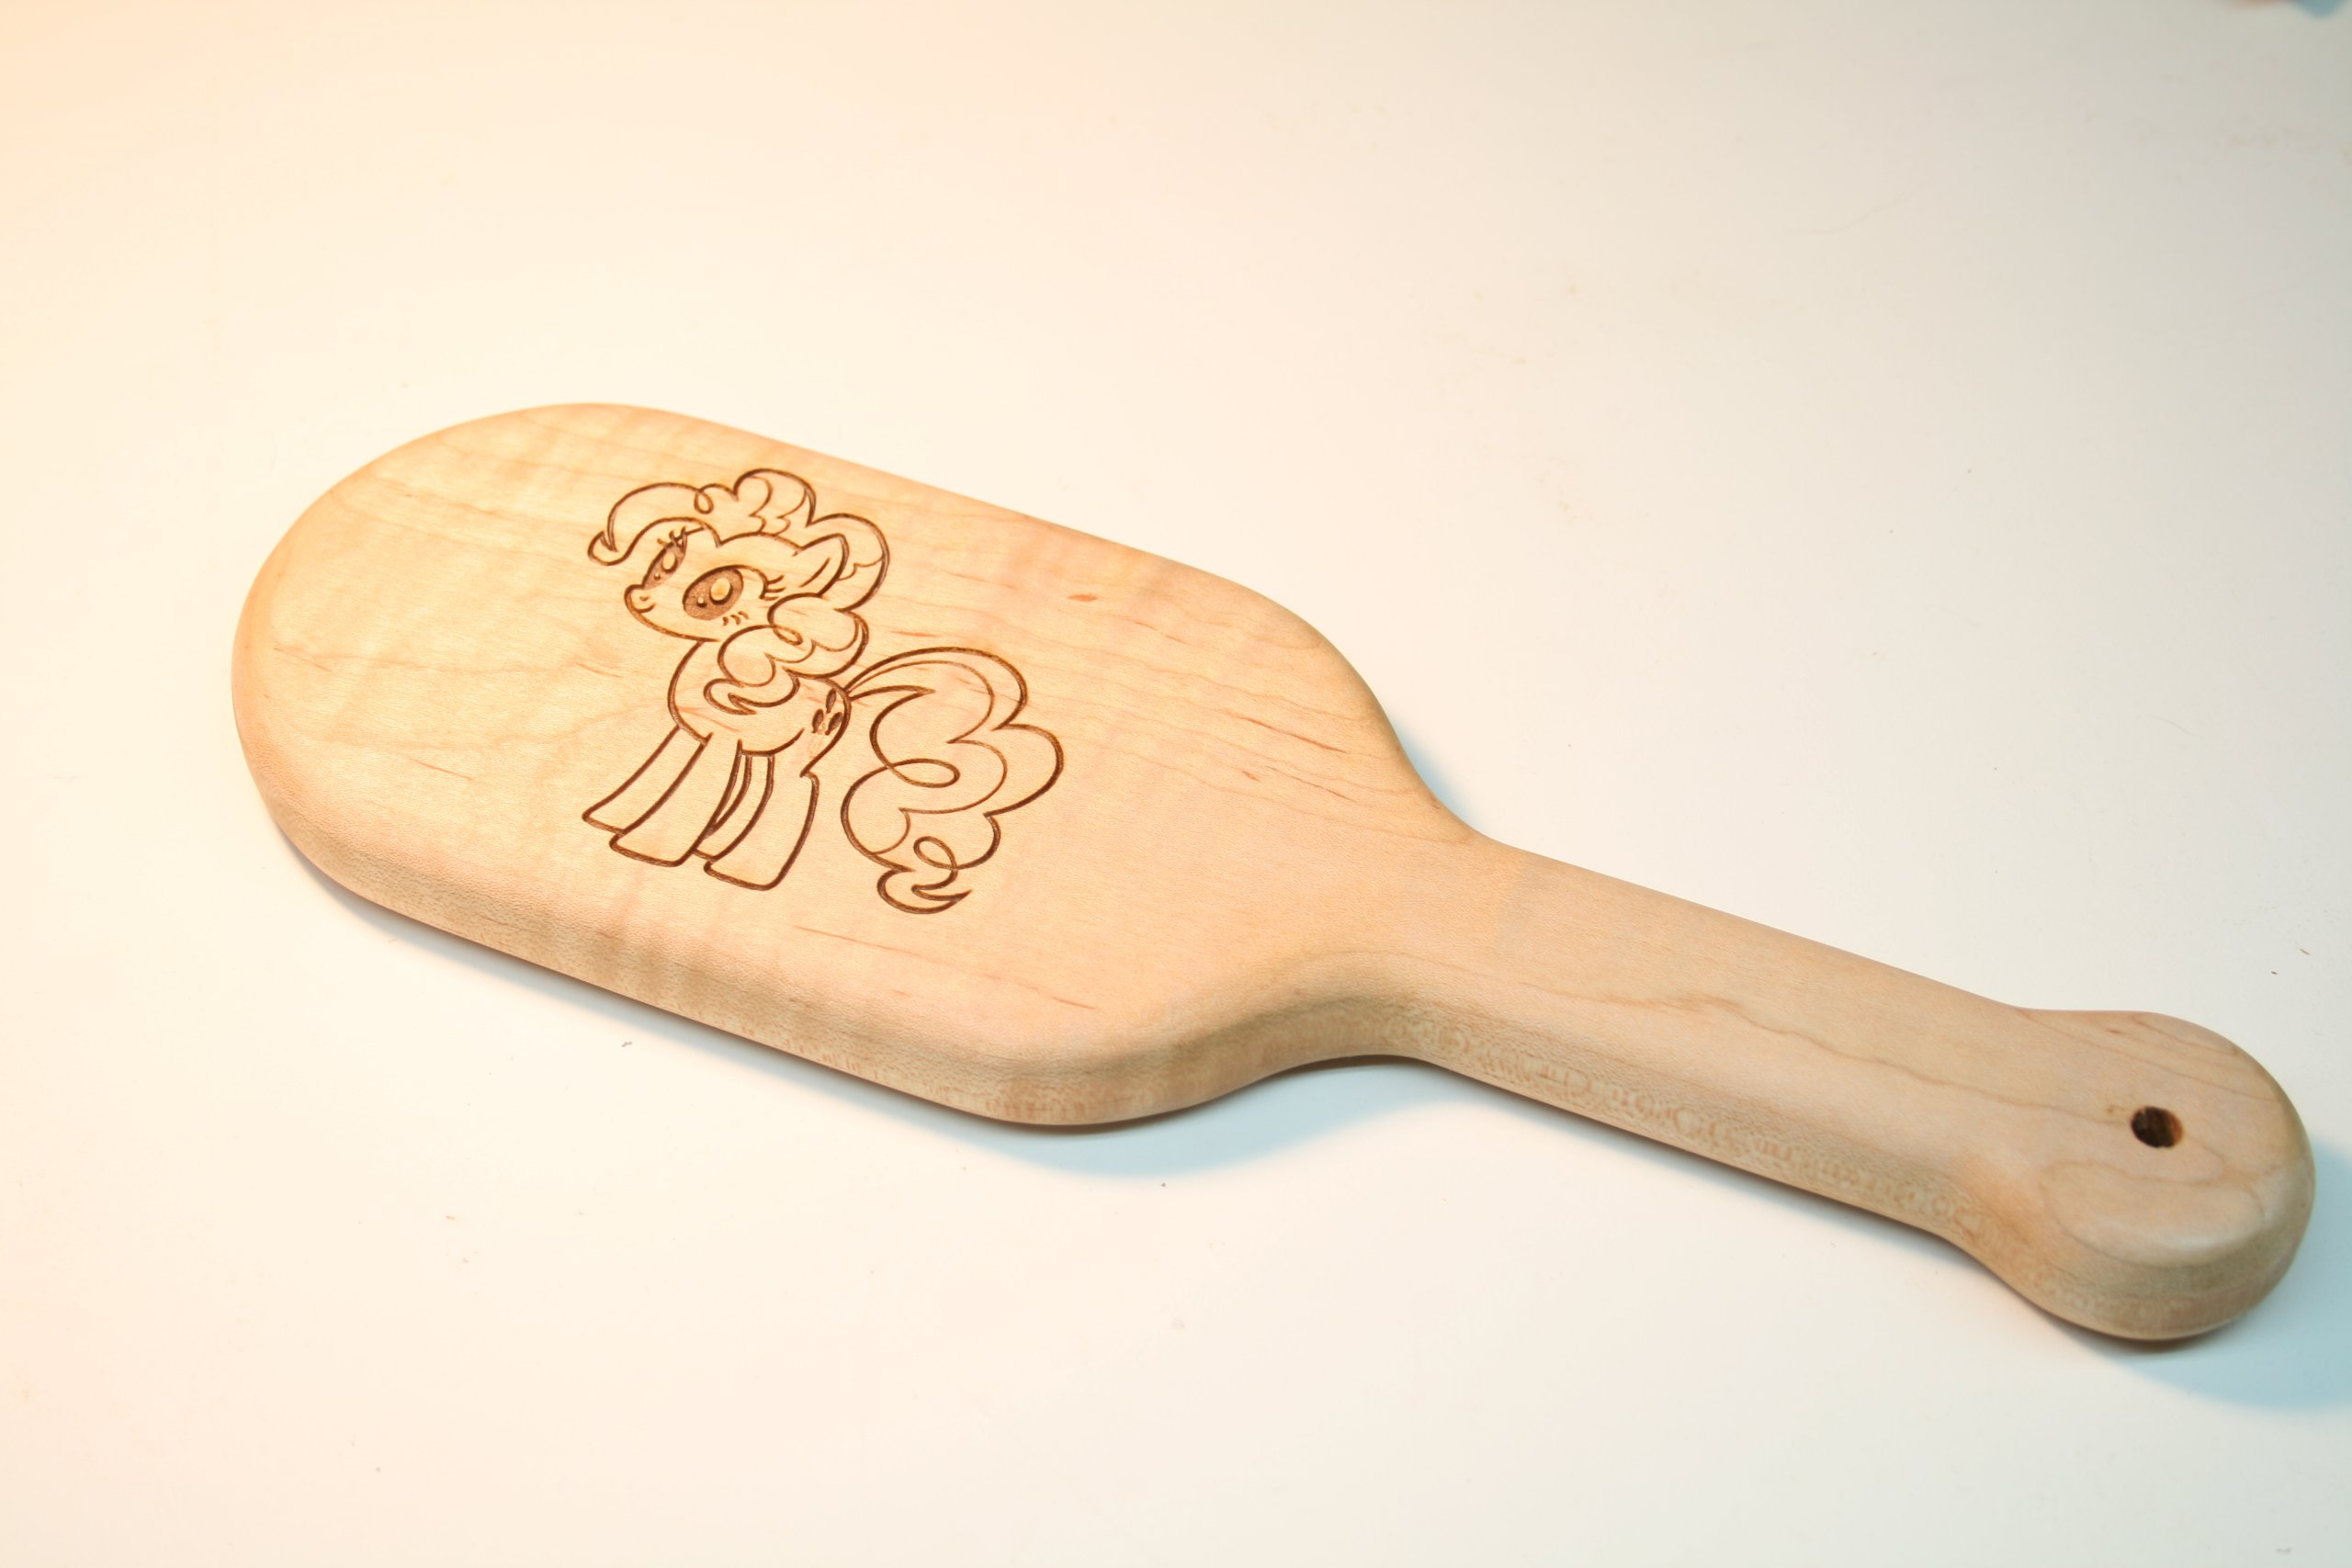 Laser Engraved Pinkie Pie BDSM Spanking Paddle in Maple Fetish BDSM Sex Gear by The Kink Factory USA